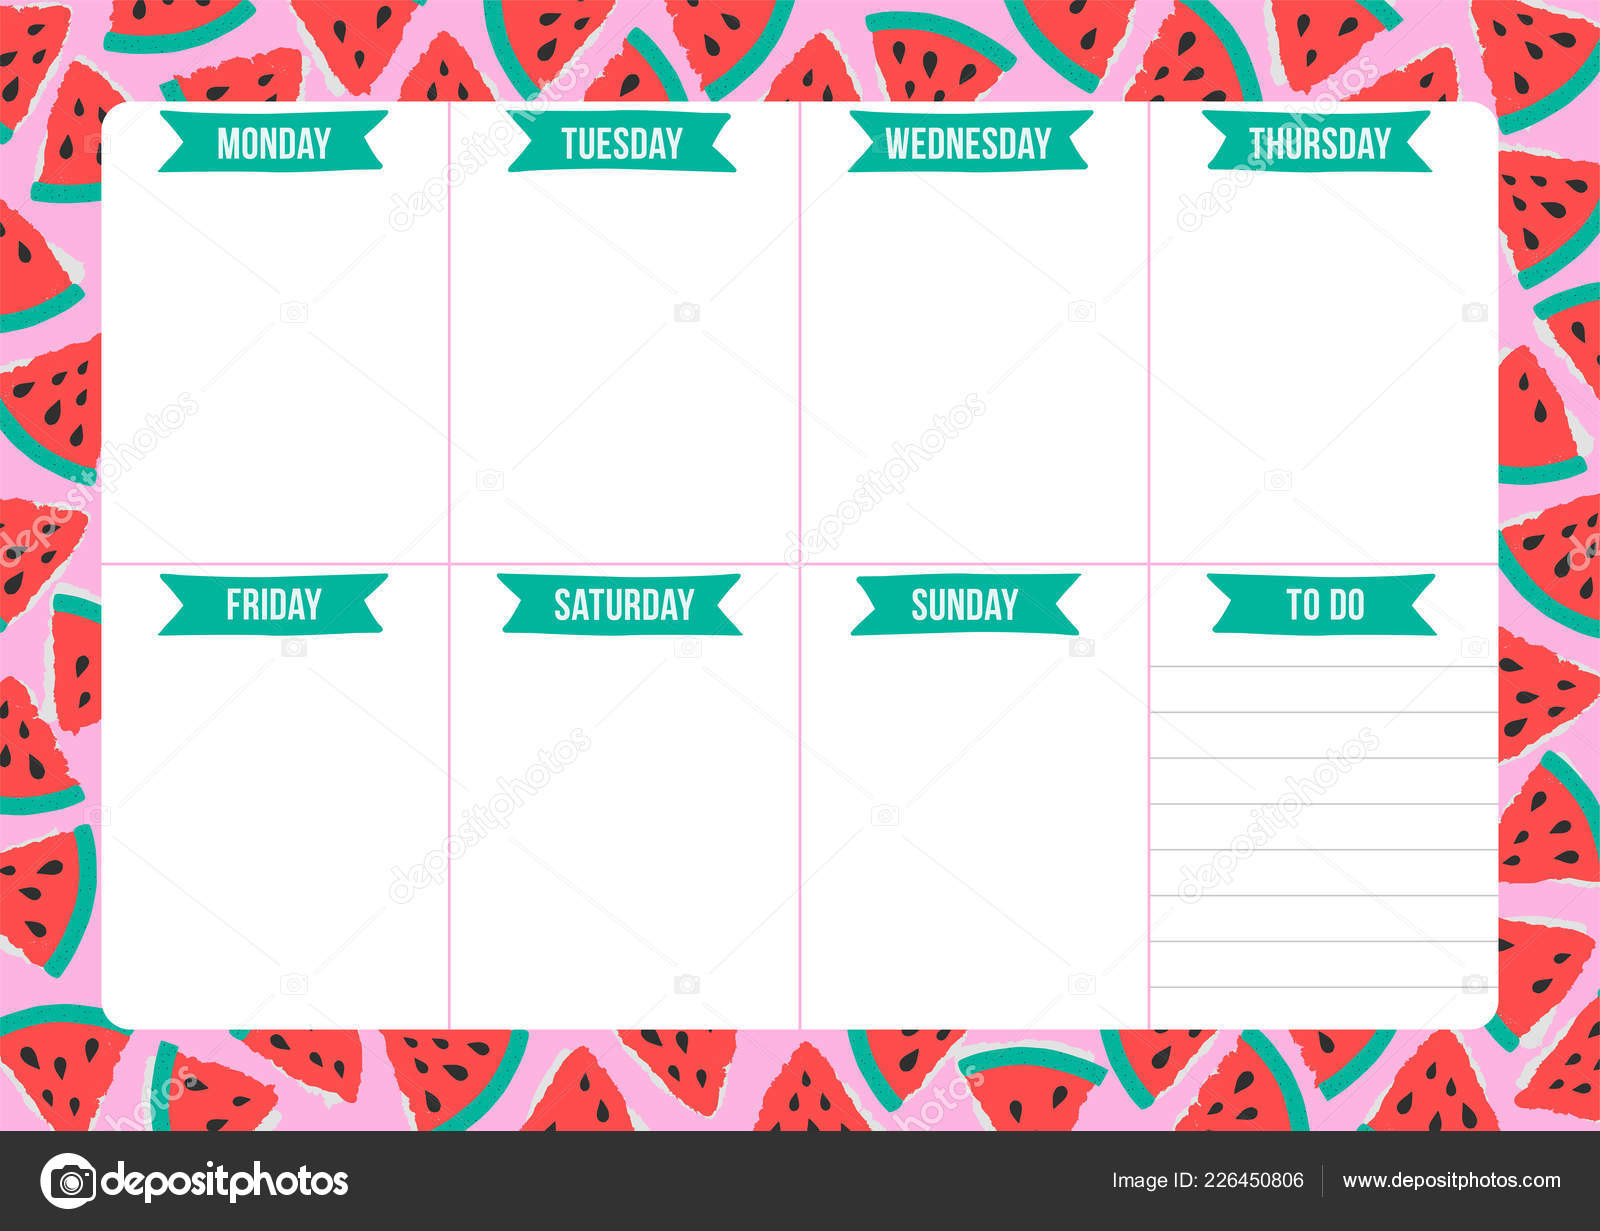 Cute Weekly Planner Drawn Watermelon Scandinavian Style Template Place Notes Stock Vector